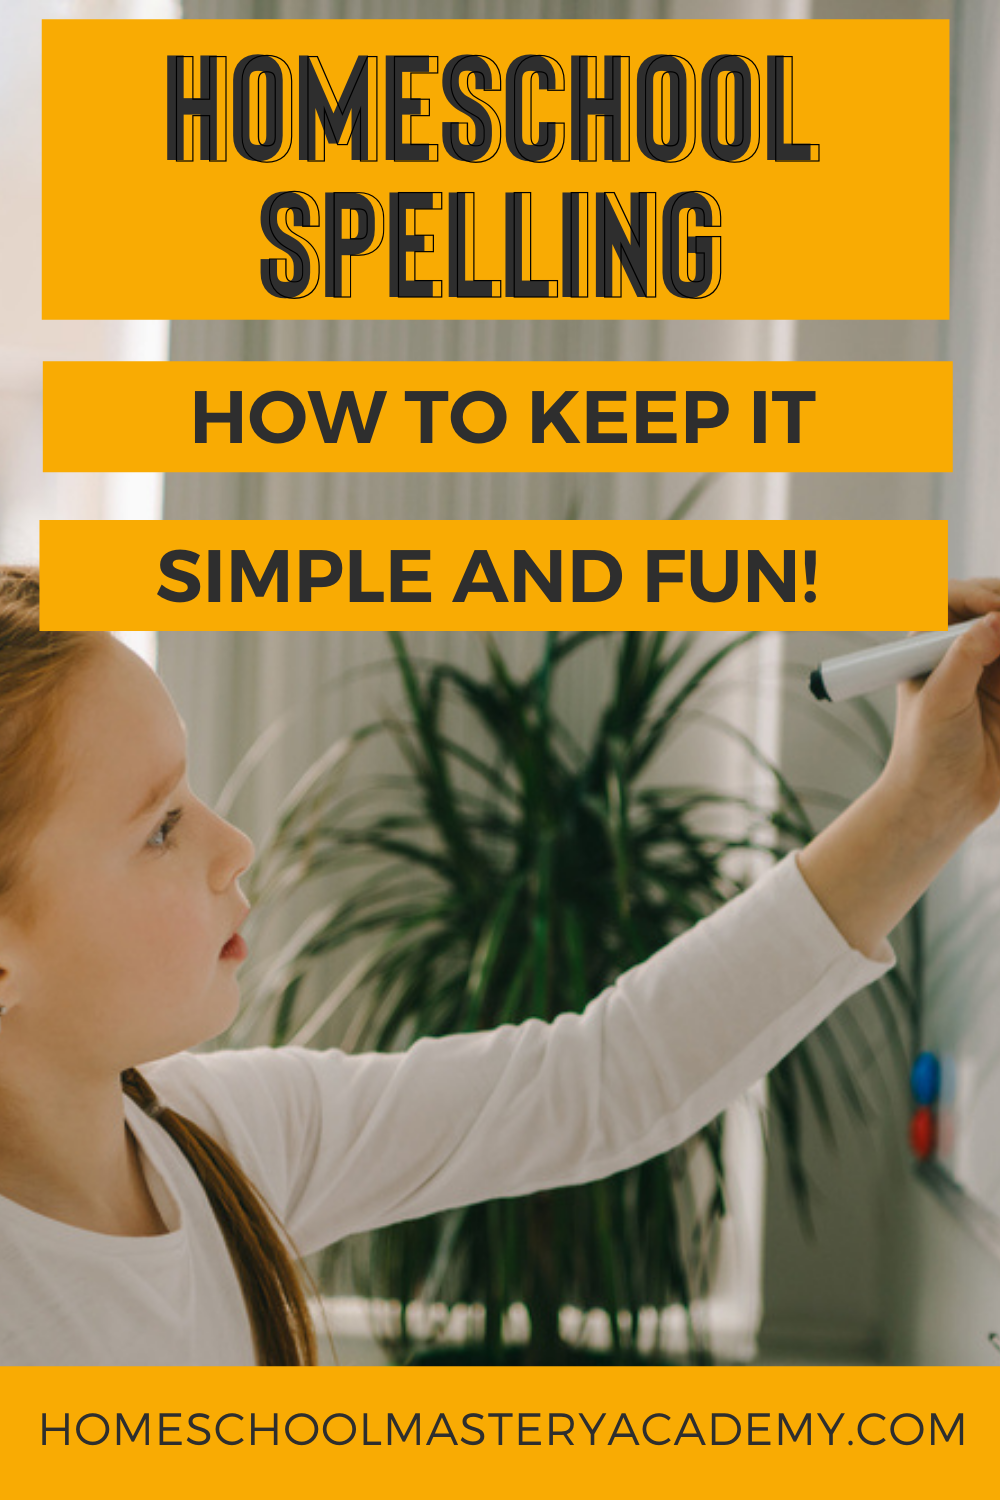 Homeschool Spelling How to Keep it Simple and Fun!